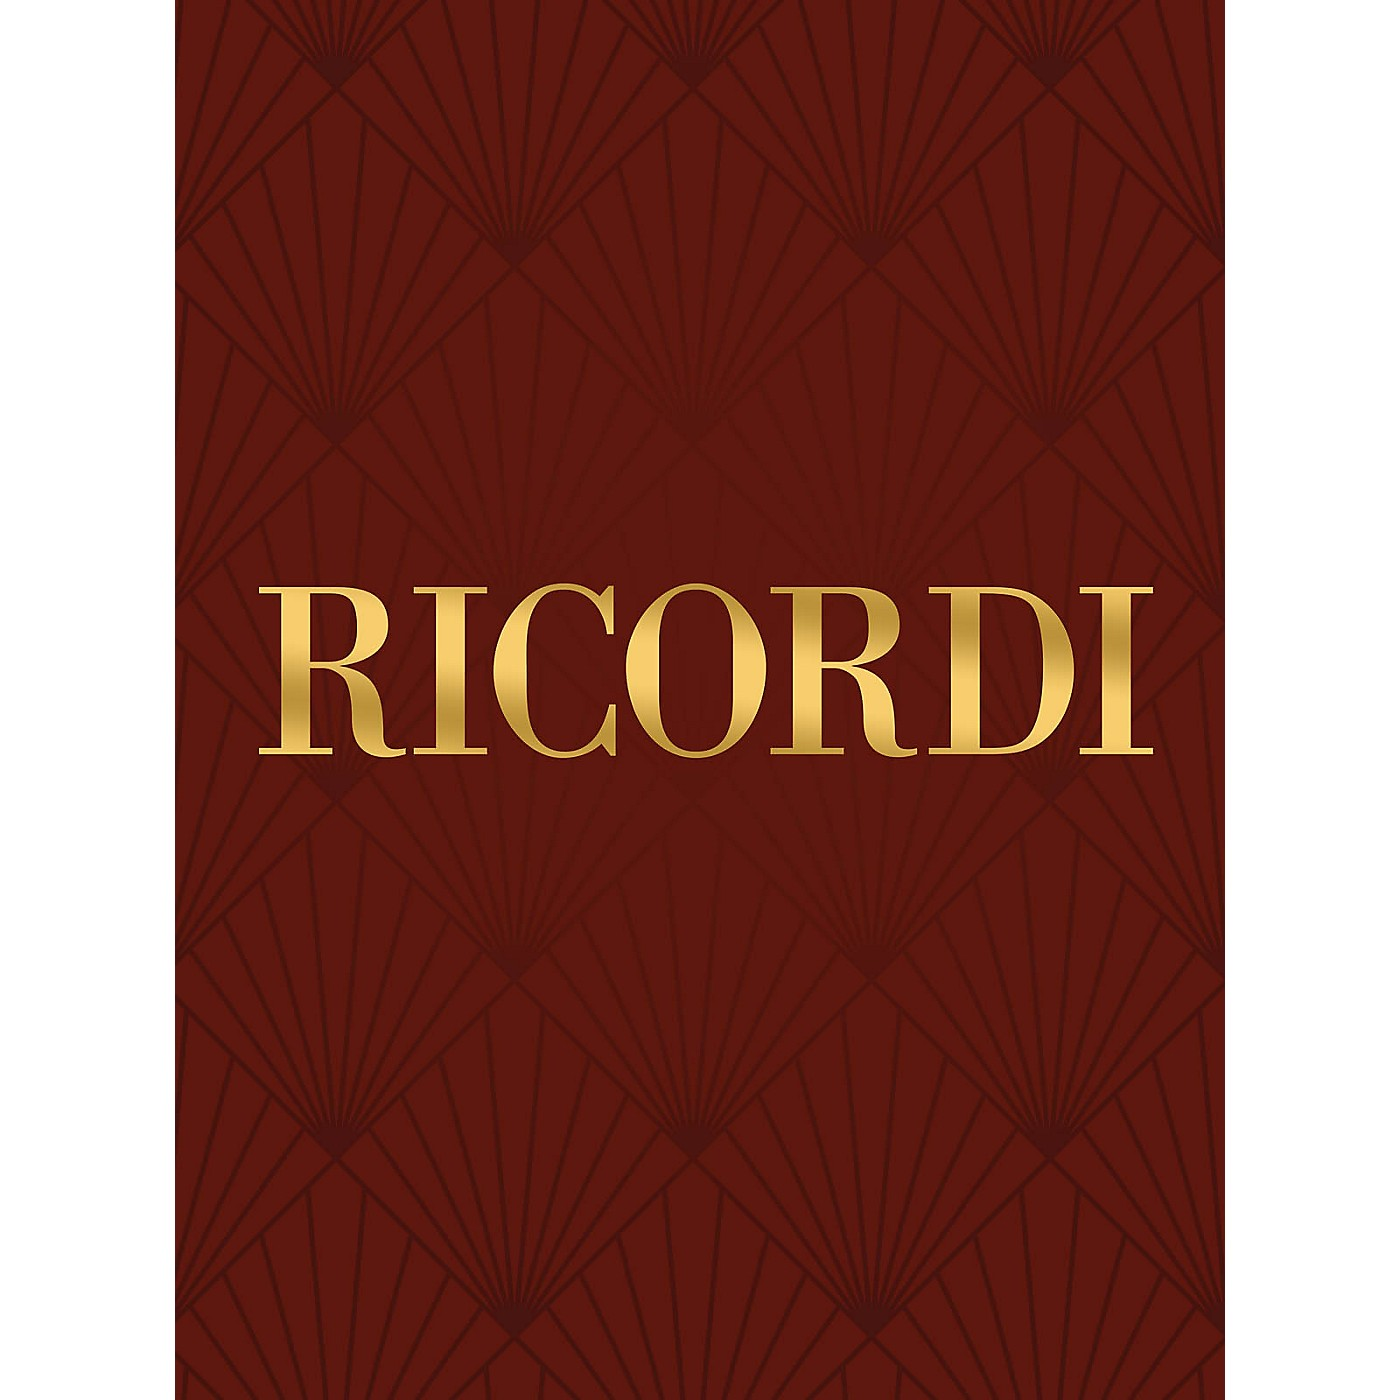 Ricordi Nocturnes (Complete) Piano Large Works Series Composed by Frederic Chopin Edited by Attilio Brugnoli thumbnail